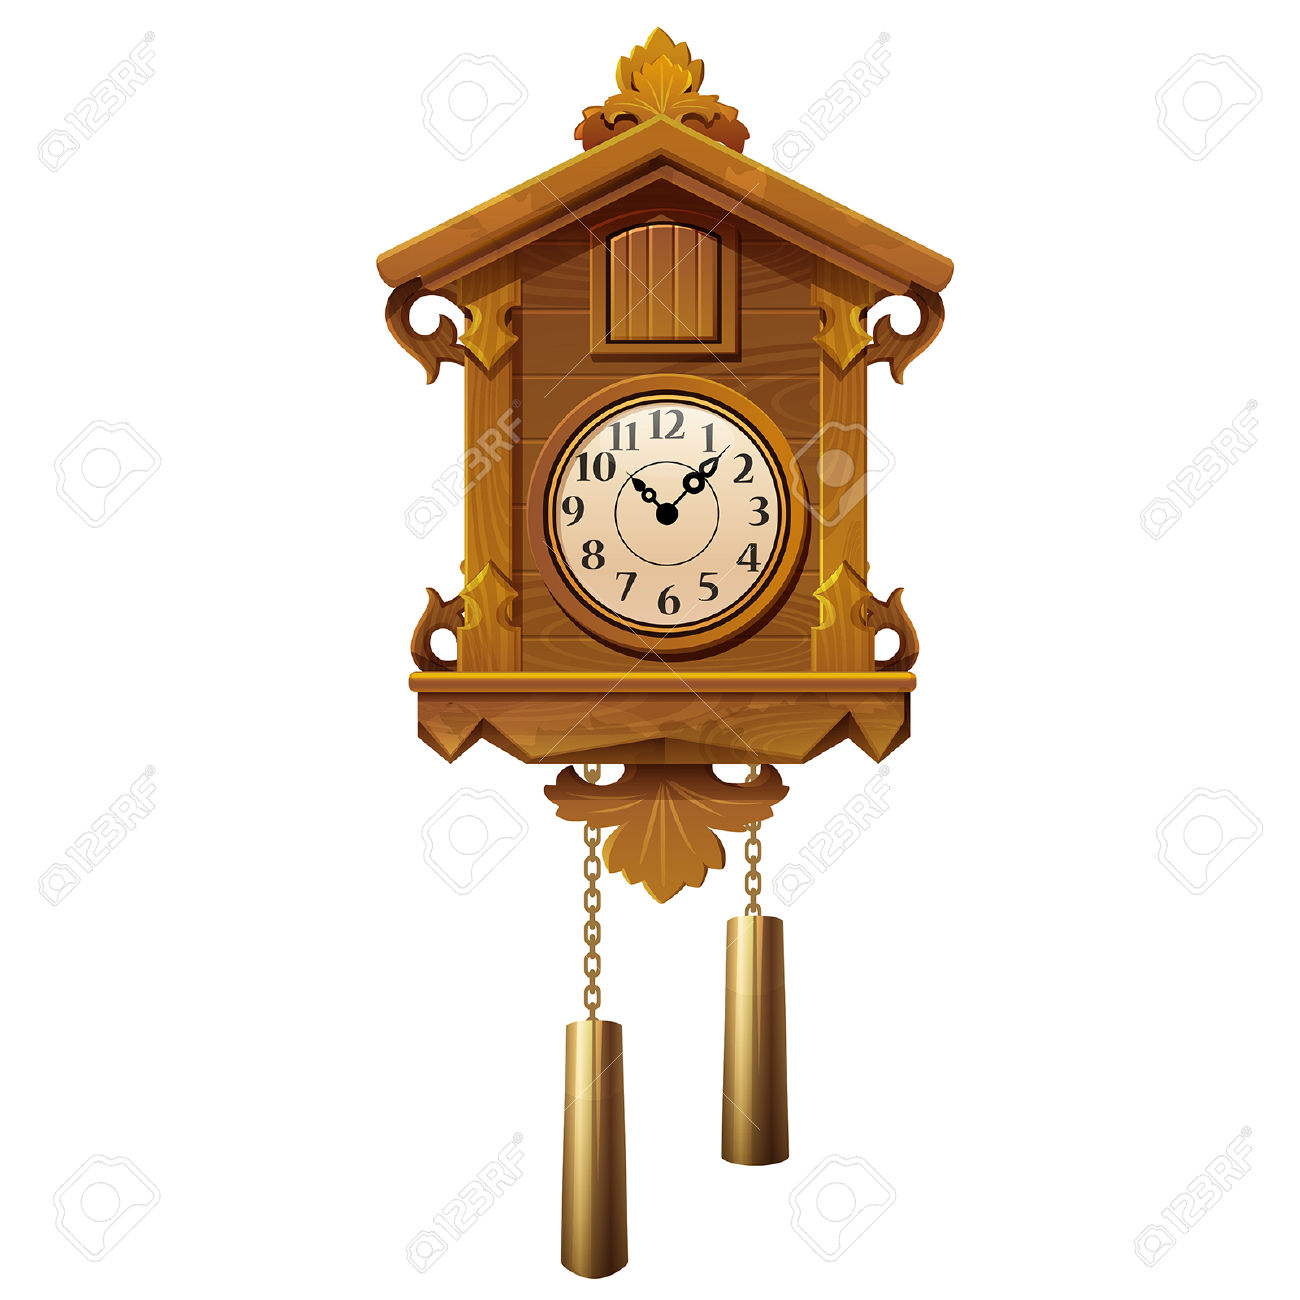 Vector Illustration Of Vintage Wooden Cuckoo Clock On A White.